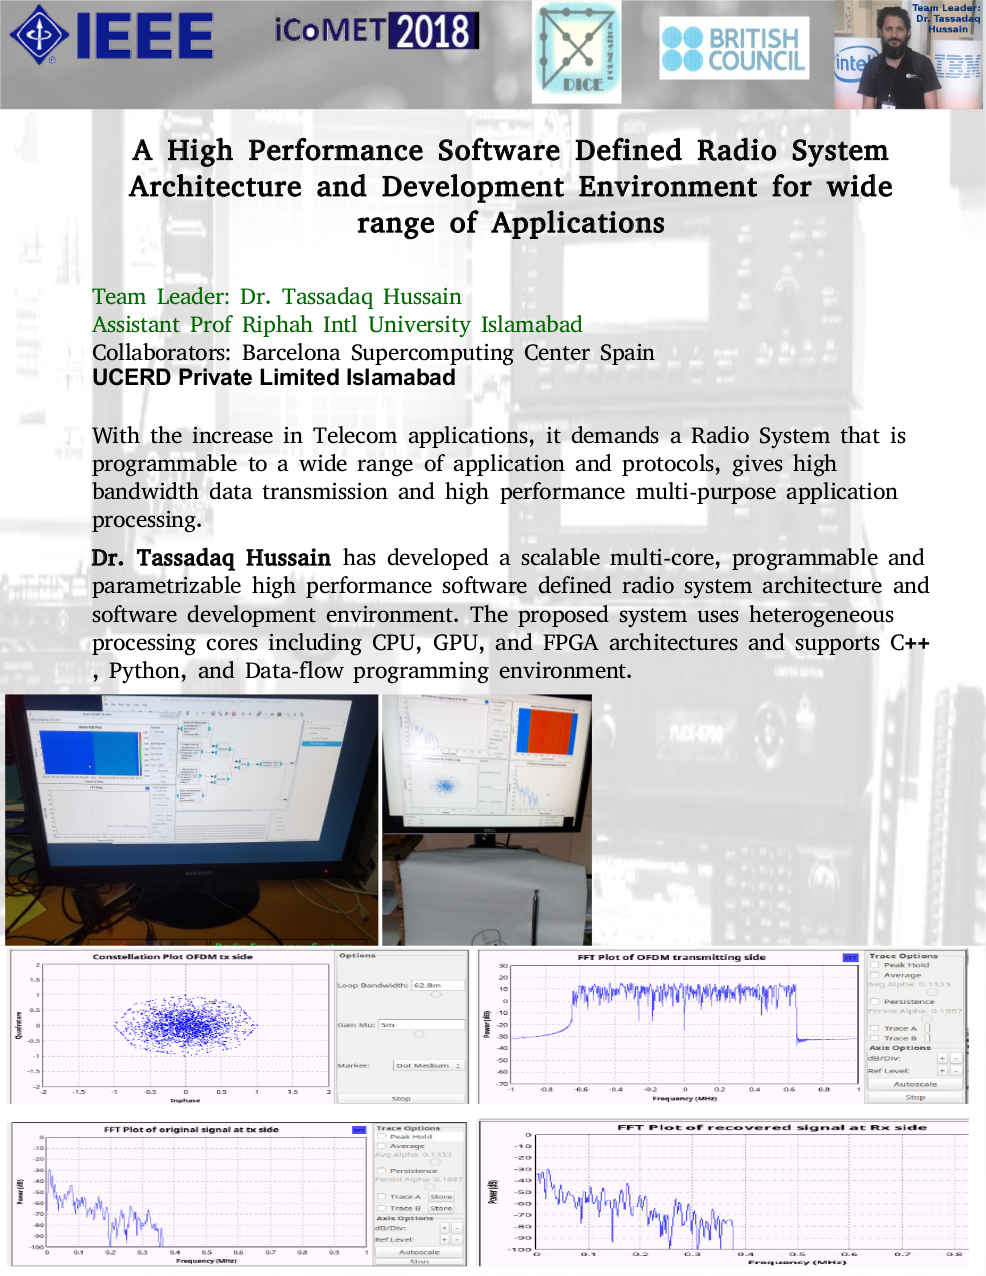 A High Performance Software Defined Radio System Architecture and Development Environment for wide range of Applications